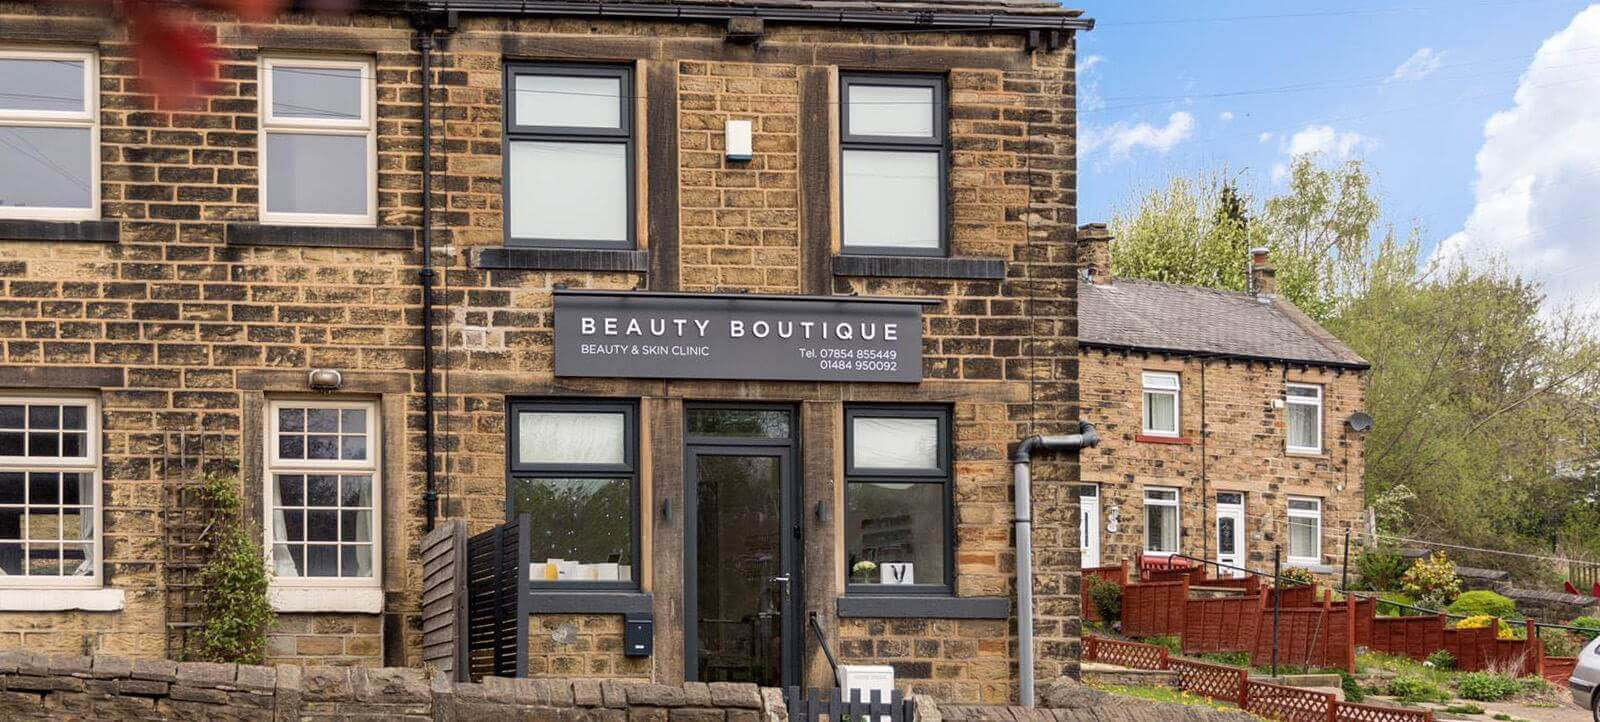 Commercial Renovation Transformed Beauty Boutique by UPVC Spray Painters